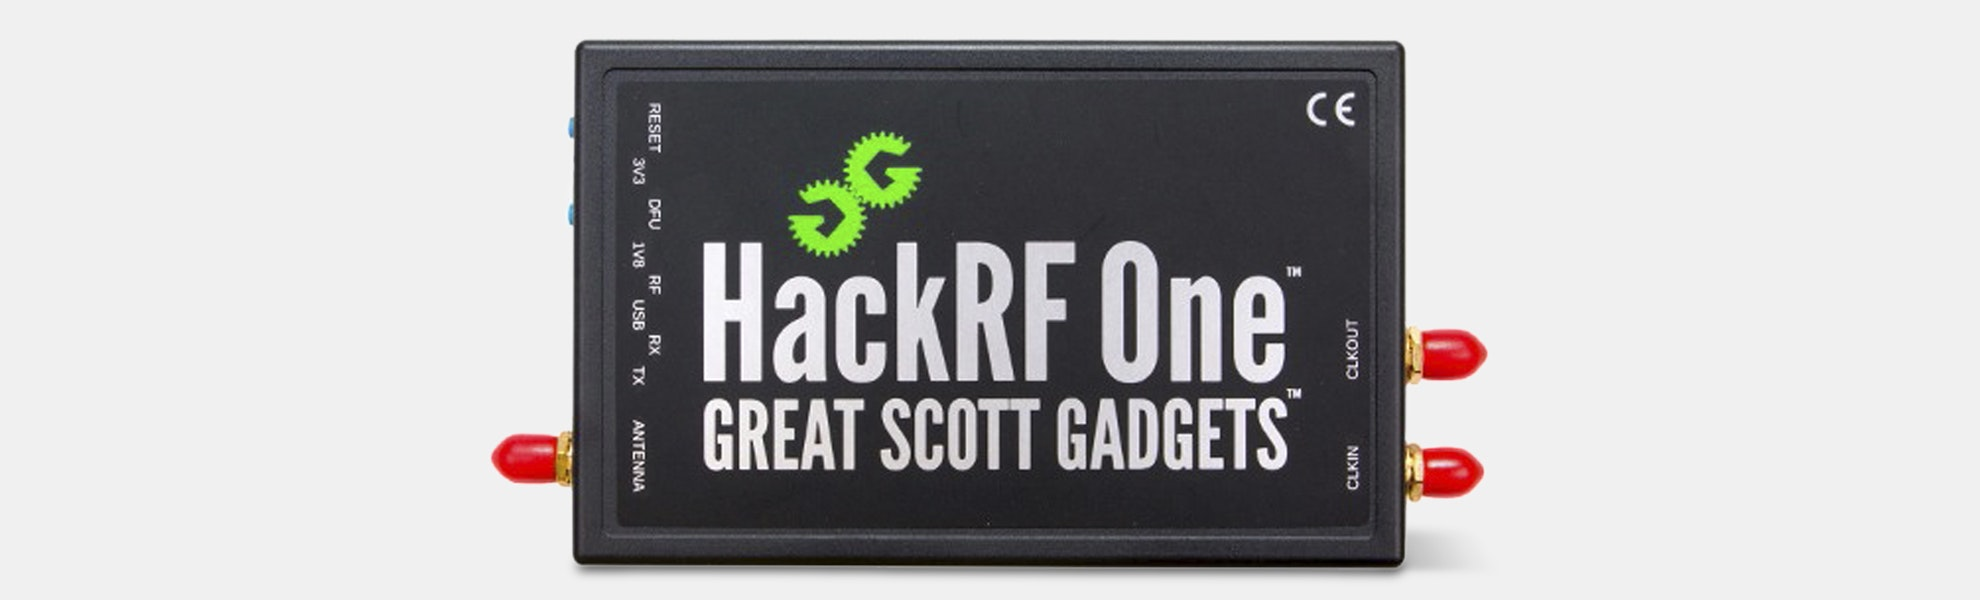 HackRF One by Great Scott Gadgets